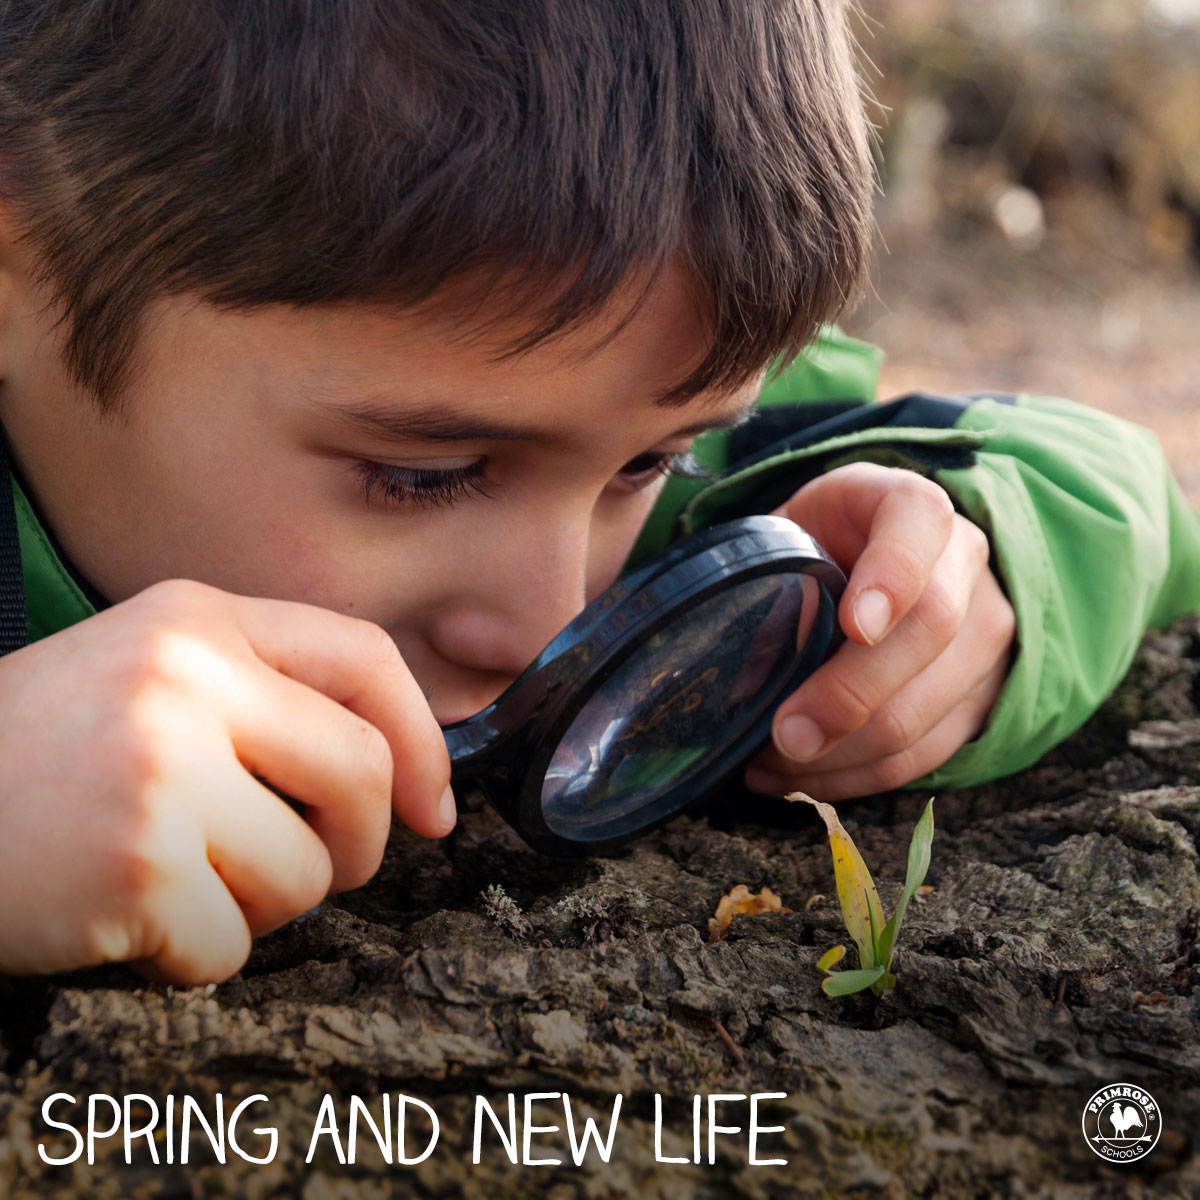 9a03684857e82f4b5fe9_Spring_and_New_Life_Facebook_Wall_Graphic.jpg